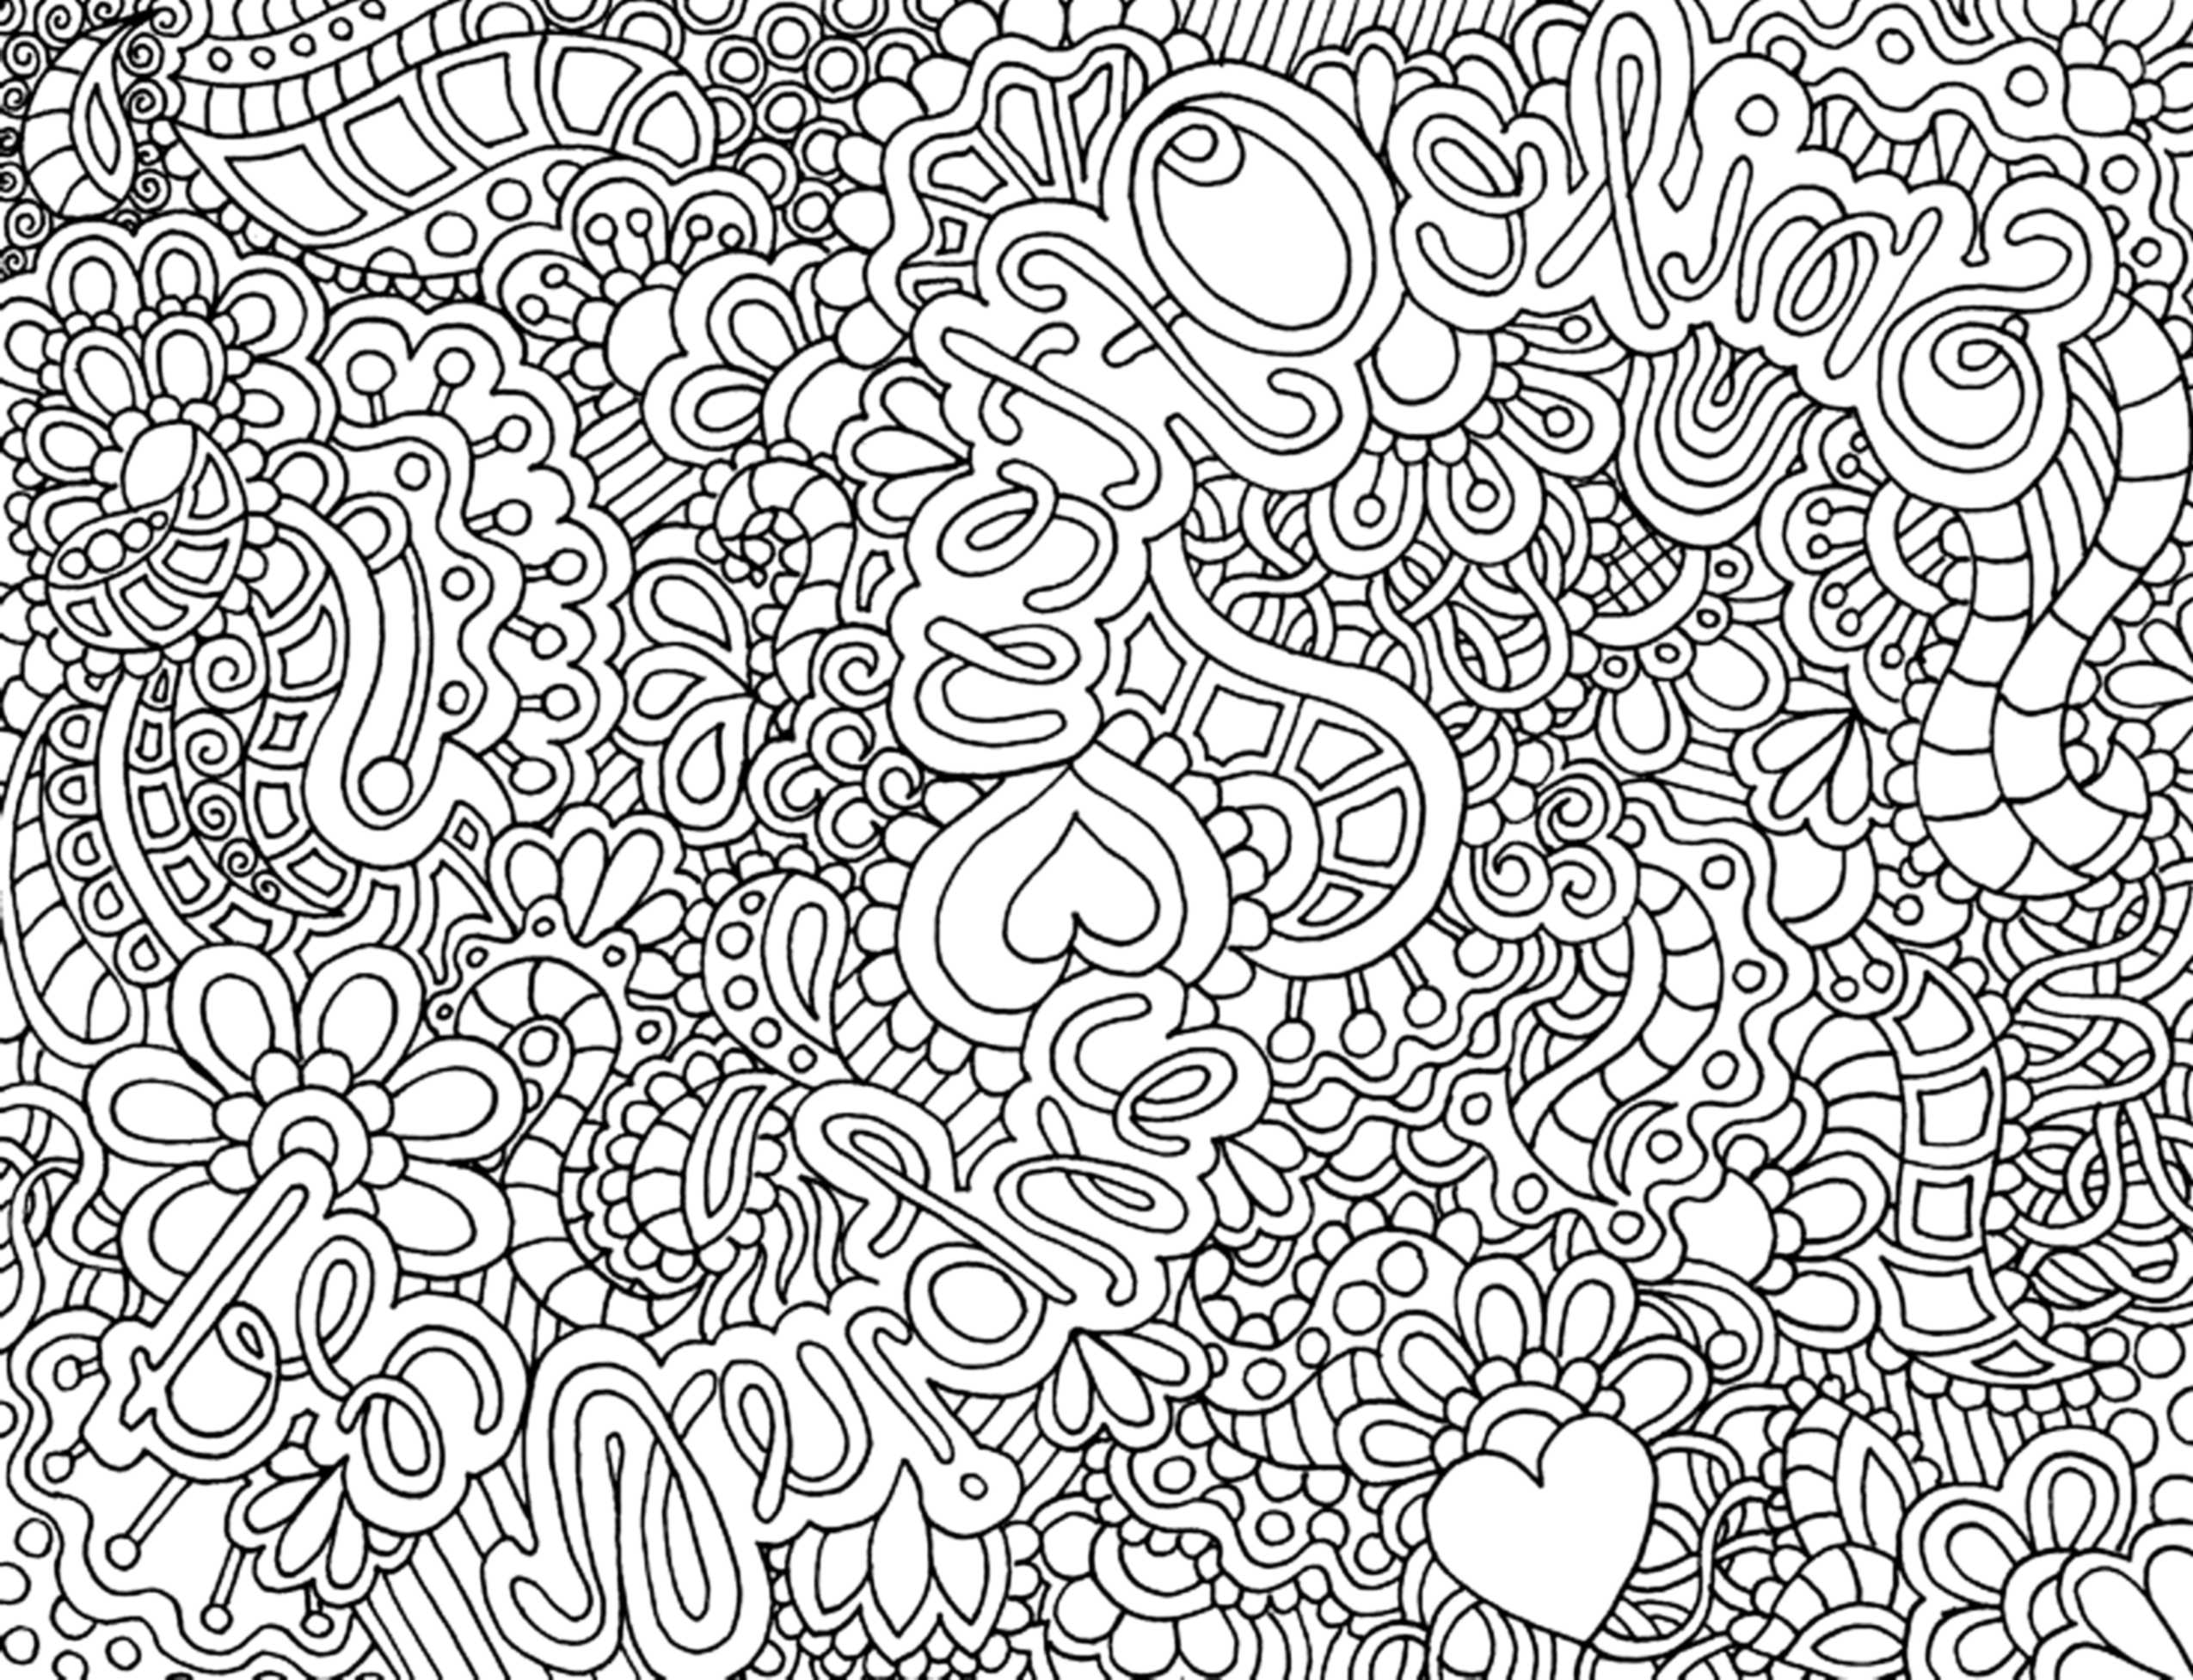 free complex coloring pages complex coloring pages for kids at getcoloringscom free complex coloring free pages